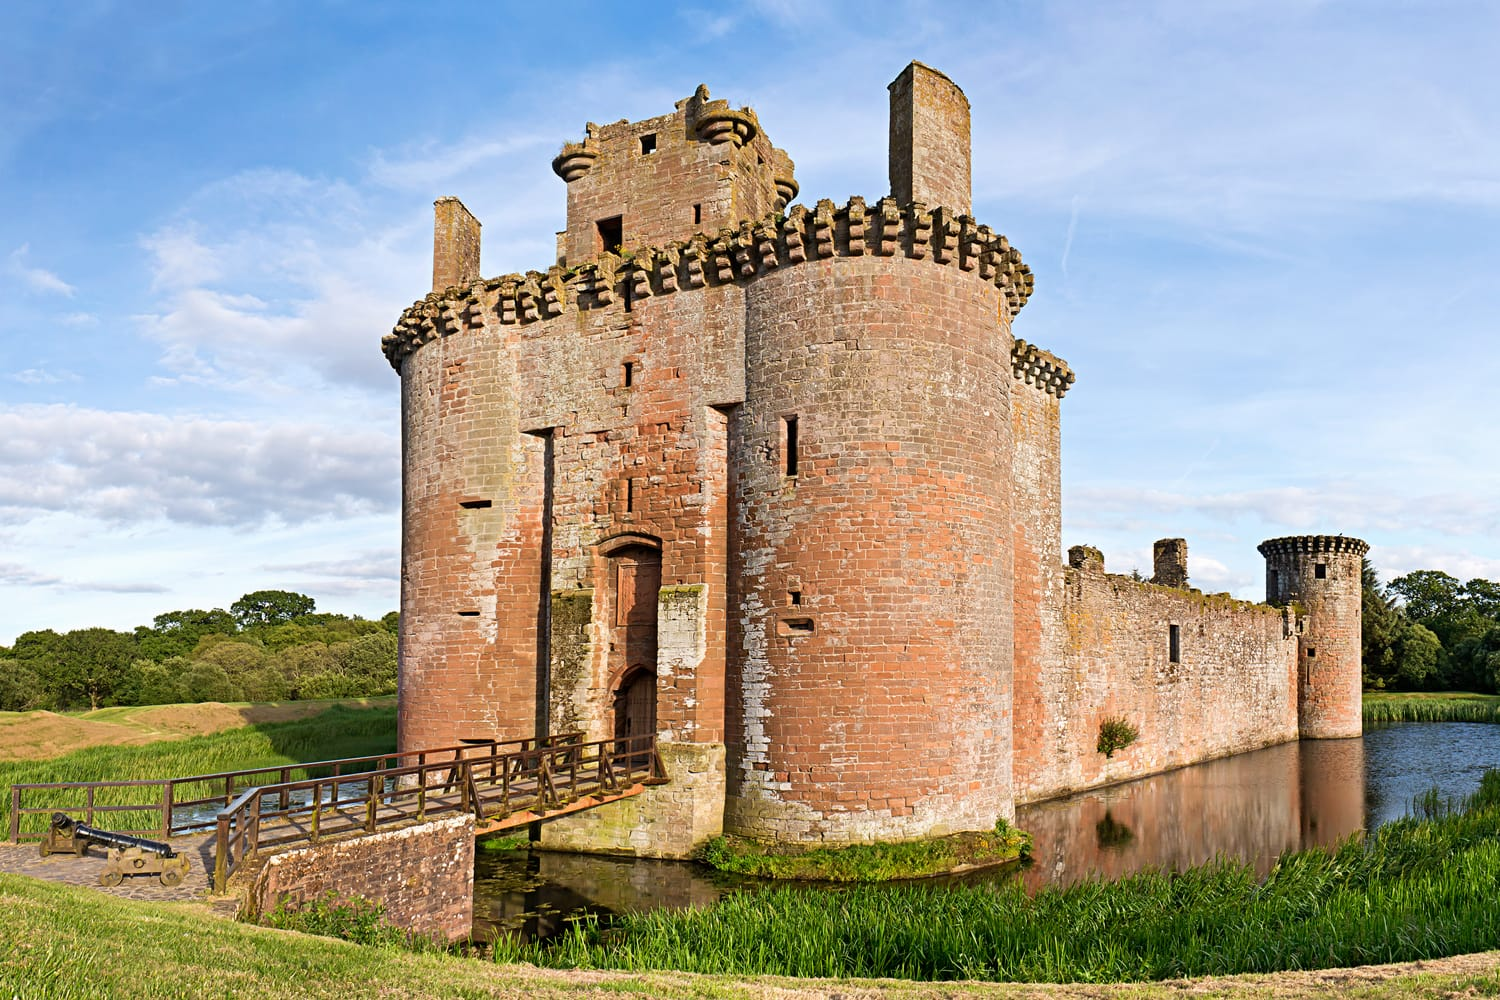 Caerlaverock Castle on a bright sunny day an idyllic scene in Dumfries and Galloway near the Scottish Border.